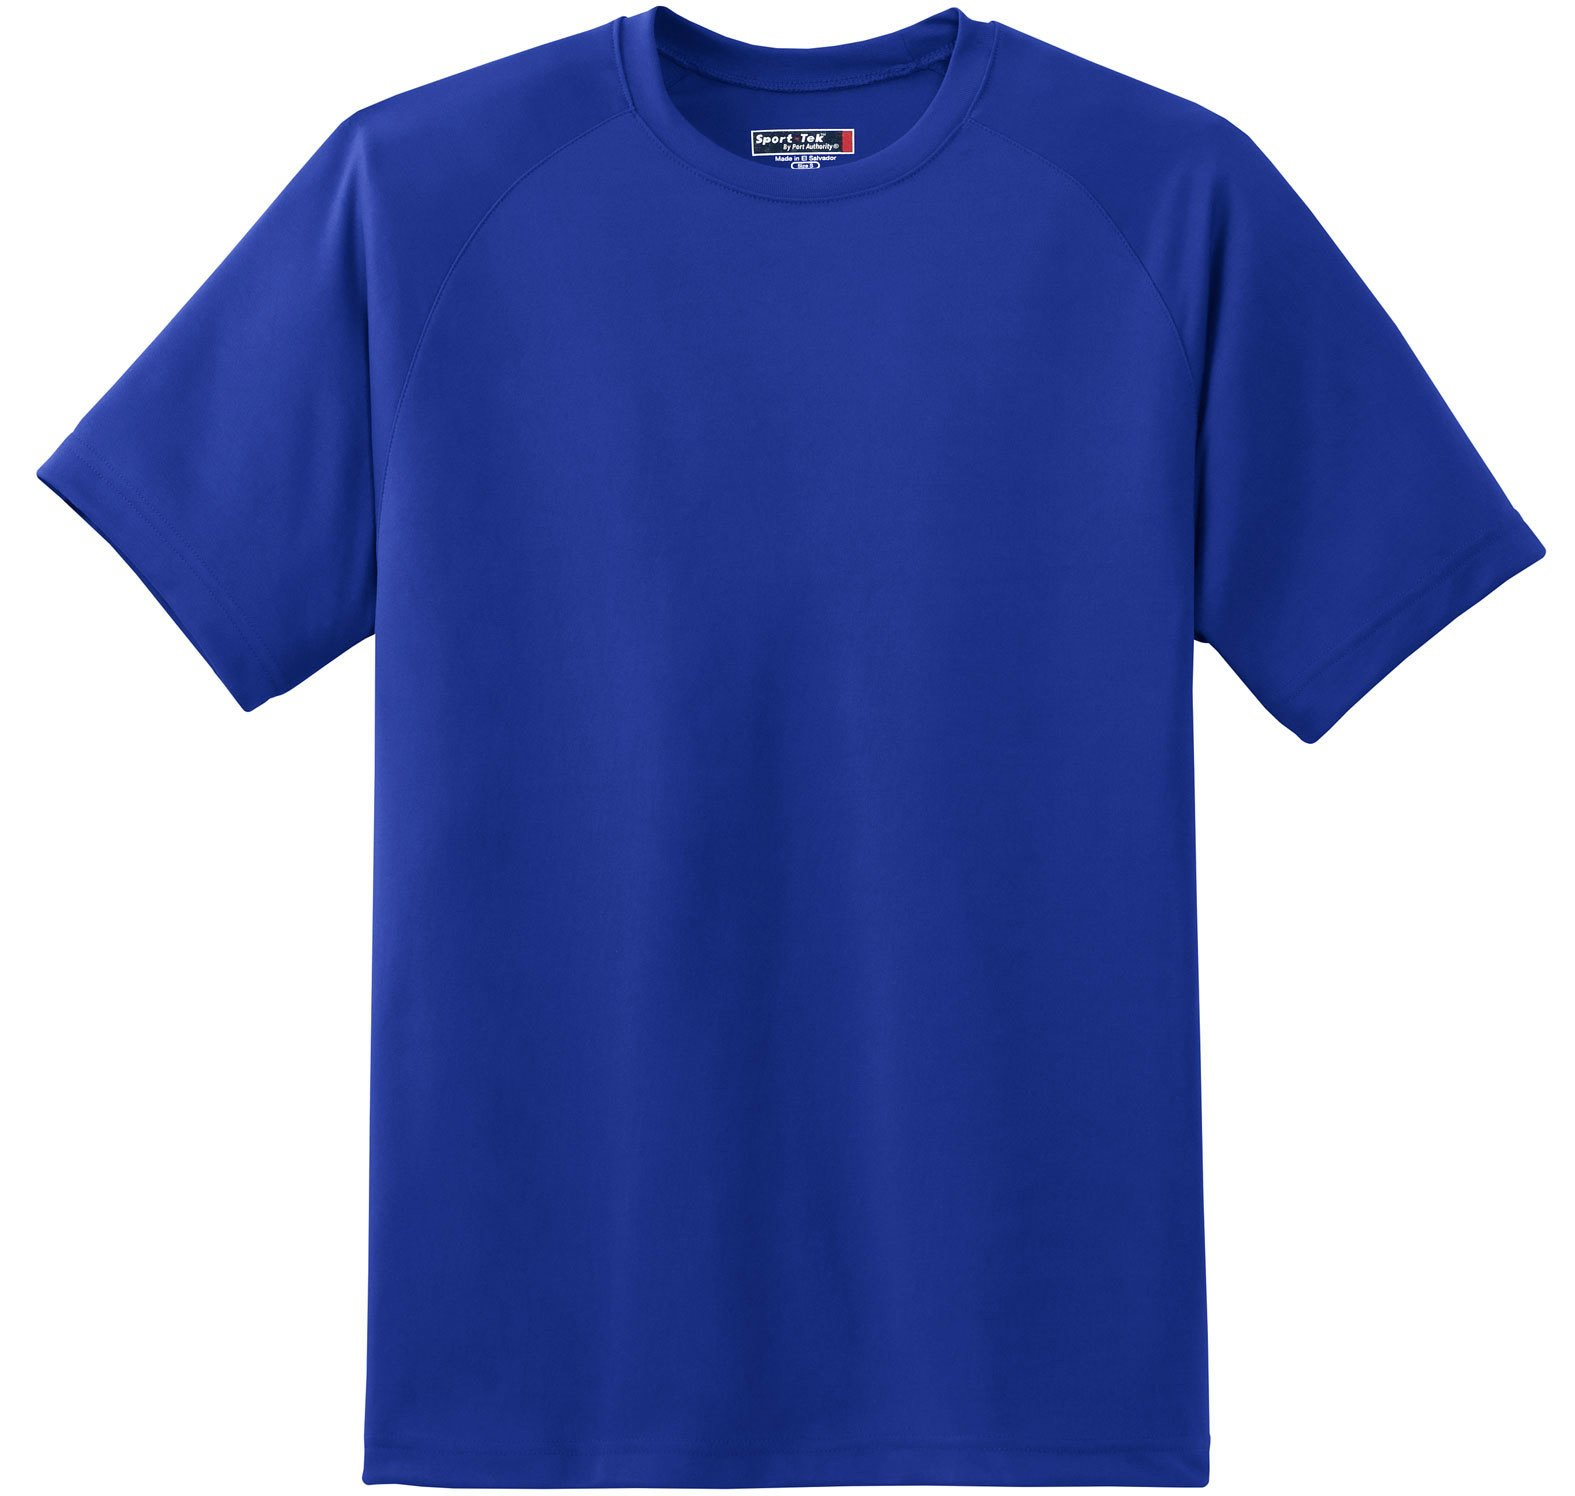 Blue T Shirt Template Blue T Shirt Template Clipart Best